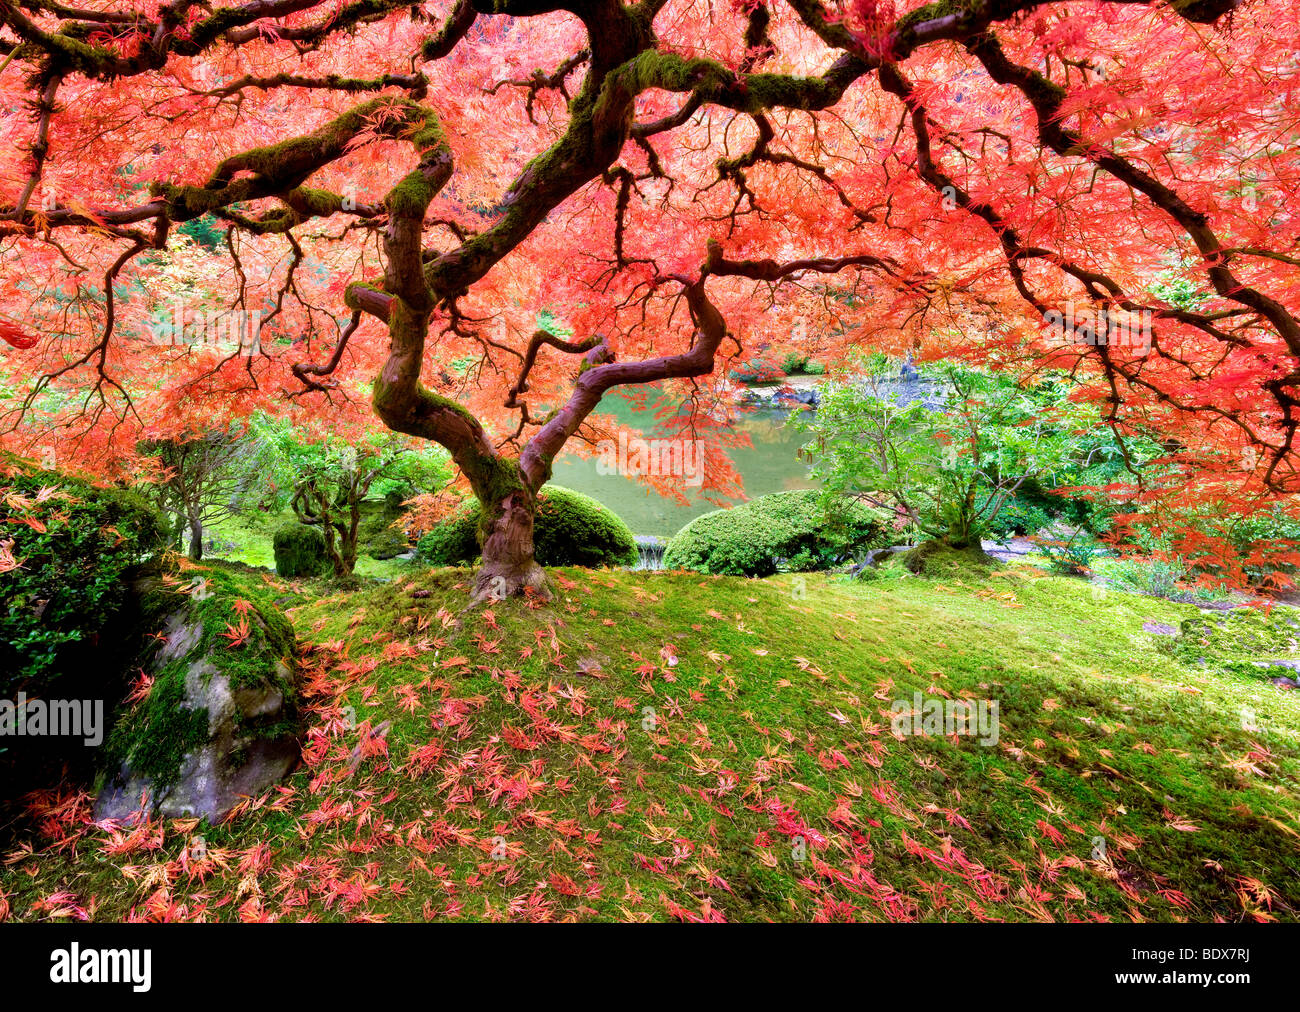 Japanese Maple tree in fall color. Portland Japanese Gardens. Oregon Stock Photo